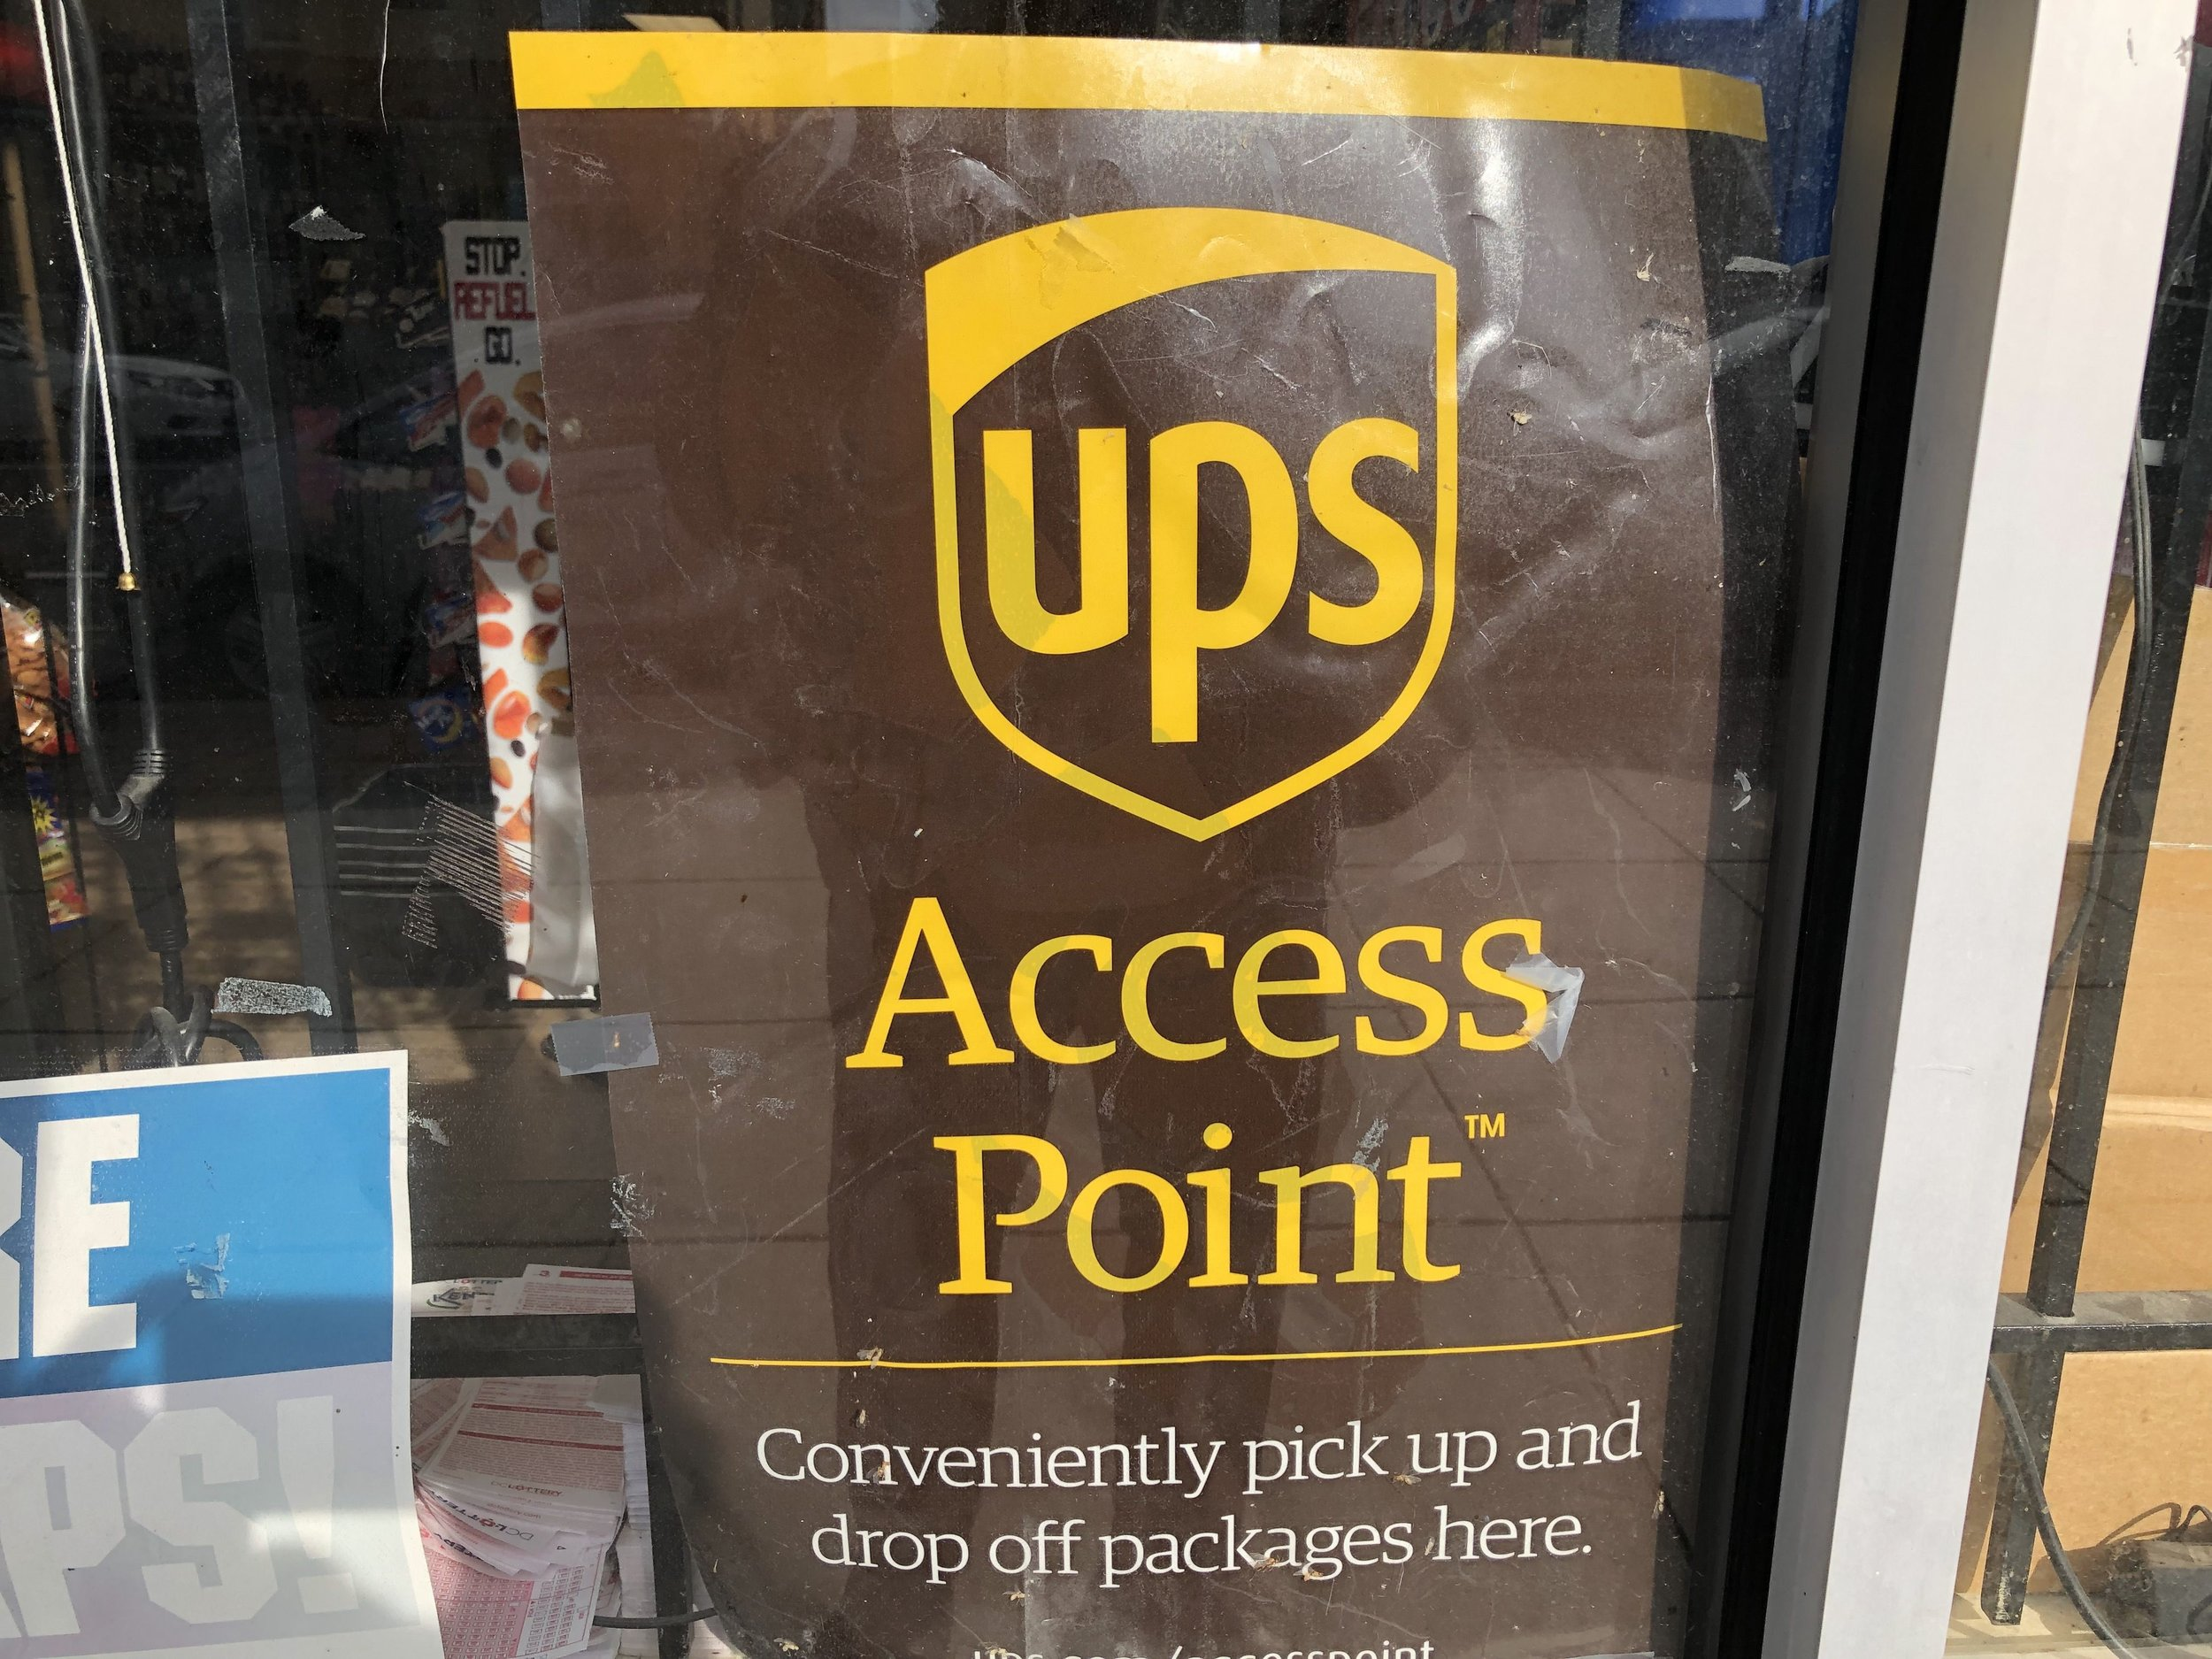 Did you know you could get packages delivered to the convenience store?